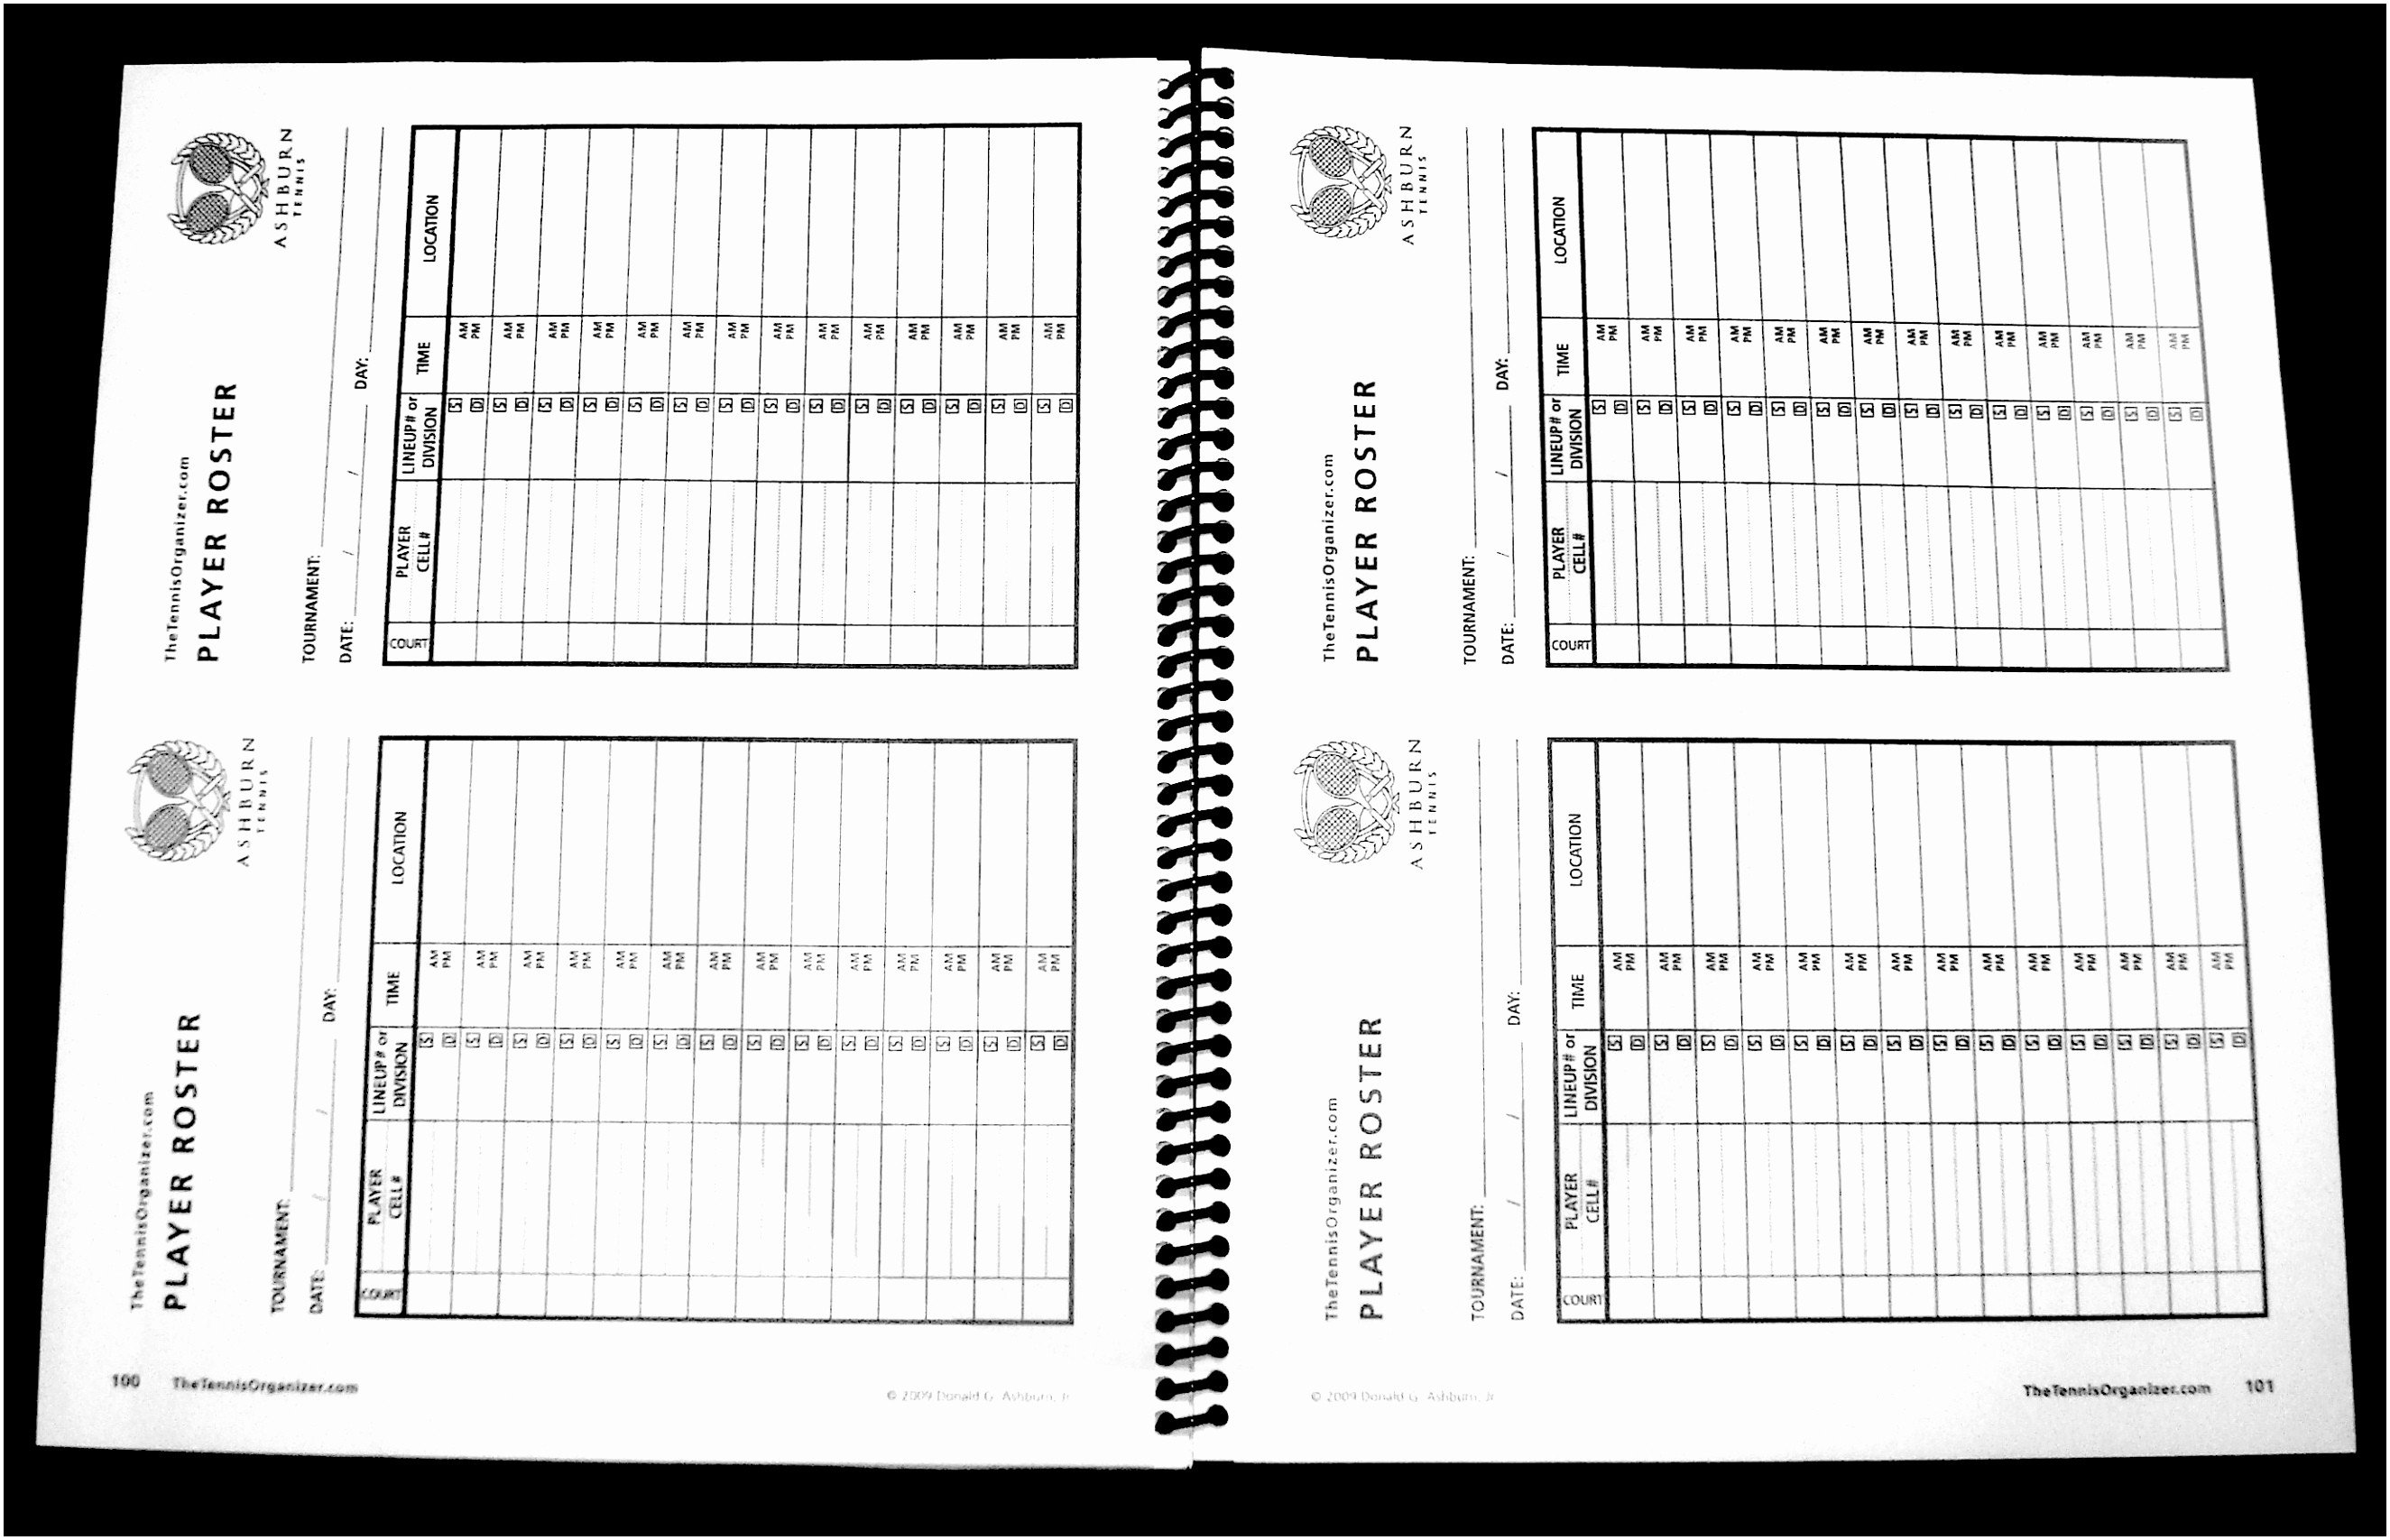 Football Depth Chart Template Excel 5 Printable Football Depth Chart Template Yaouu